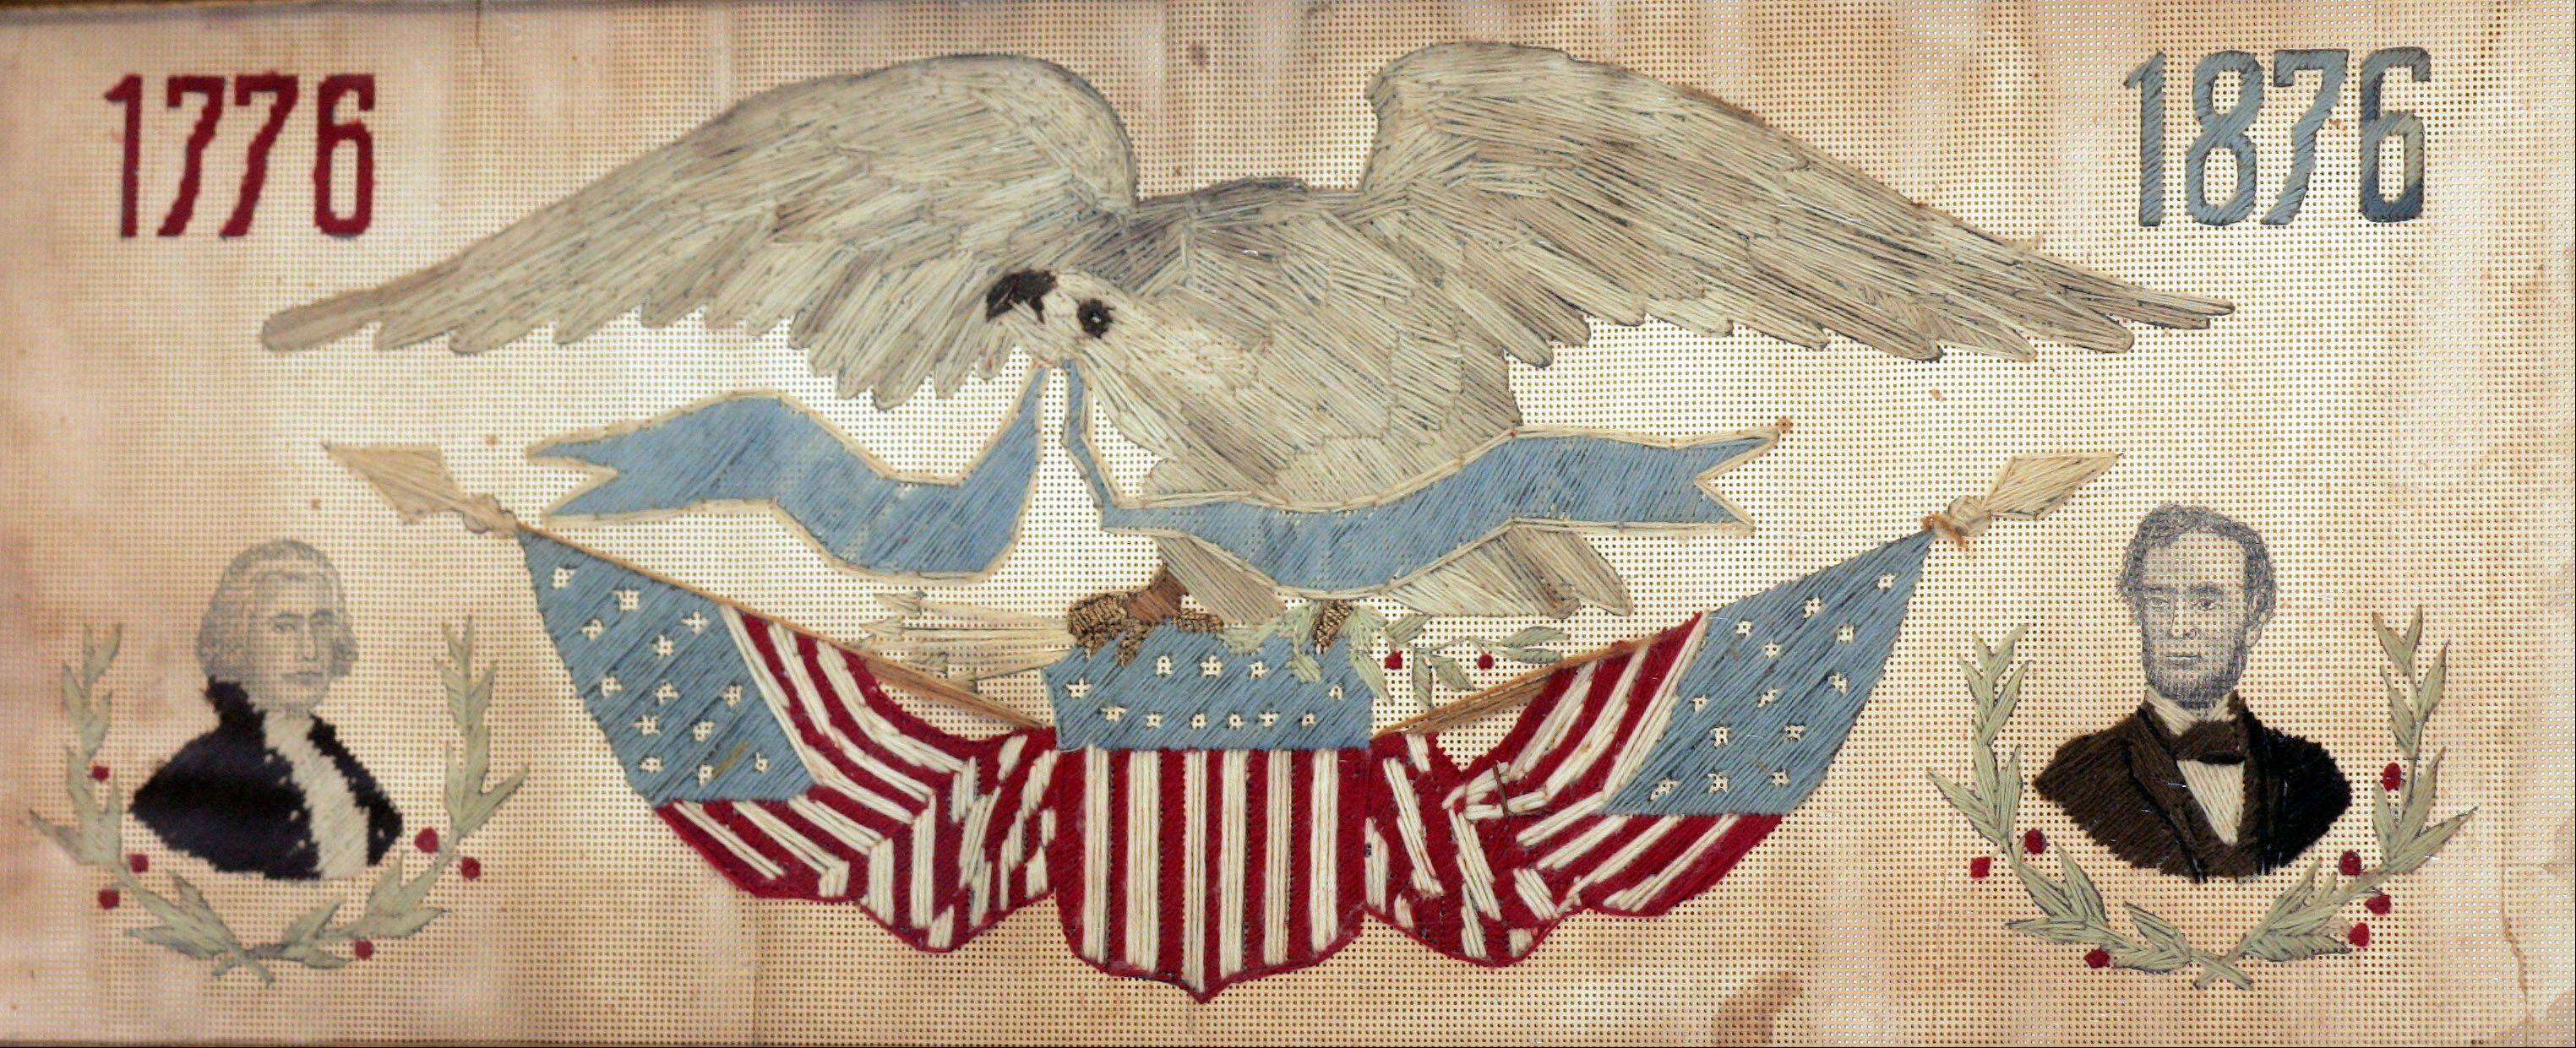 Women celebrated the U.S. Centennial with embroidery on punched paper. This has the popular eagle and flag motif, but the value is lower than it could be because presidents George Washington and Abraham Lincoln are stenciled on, not sewn.